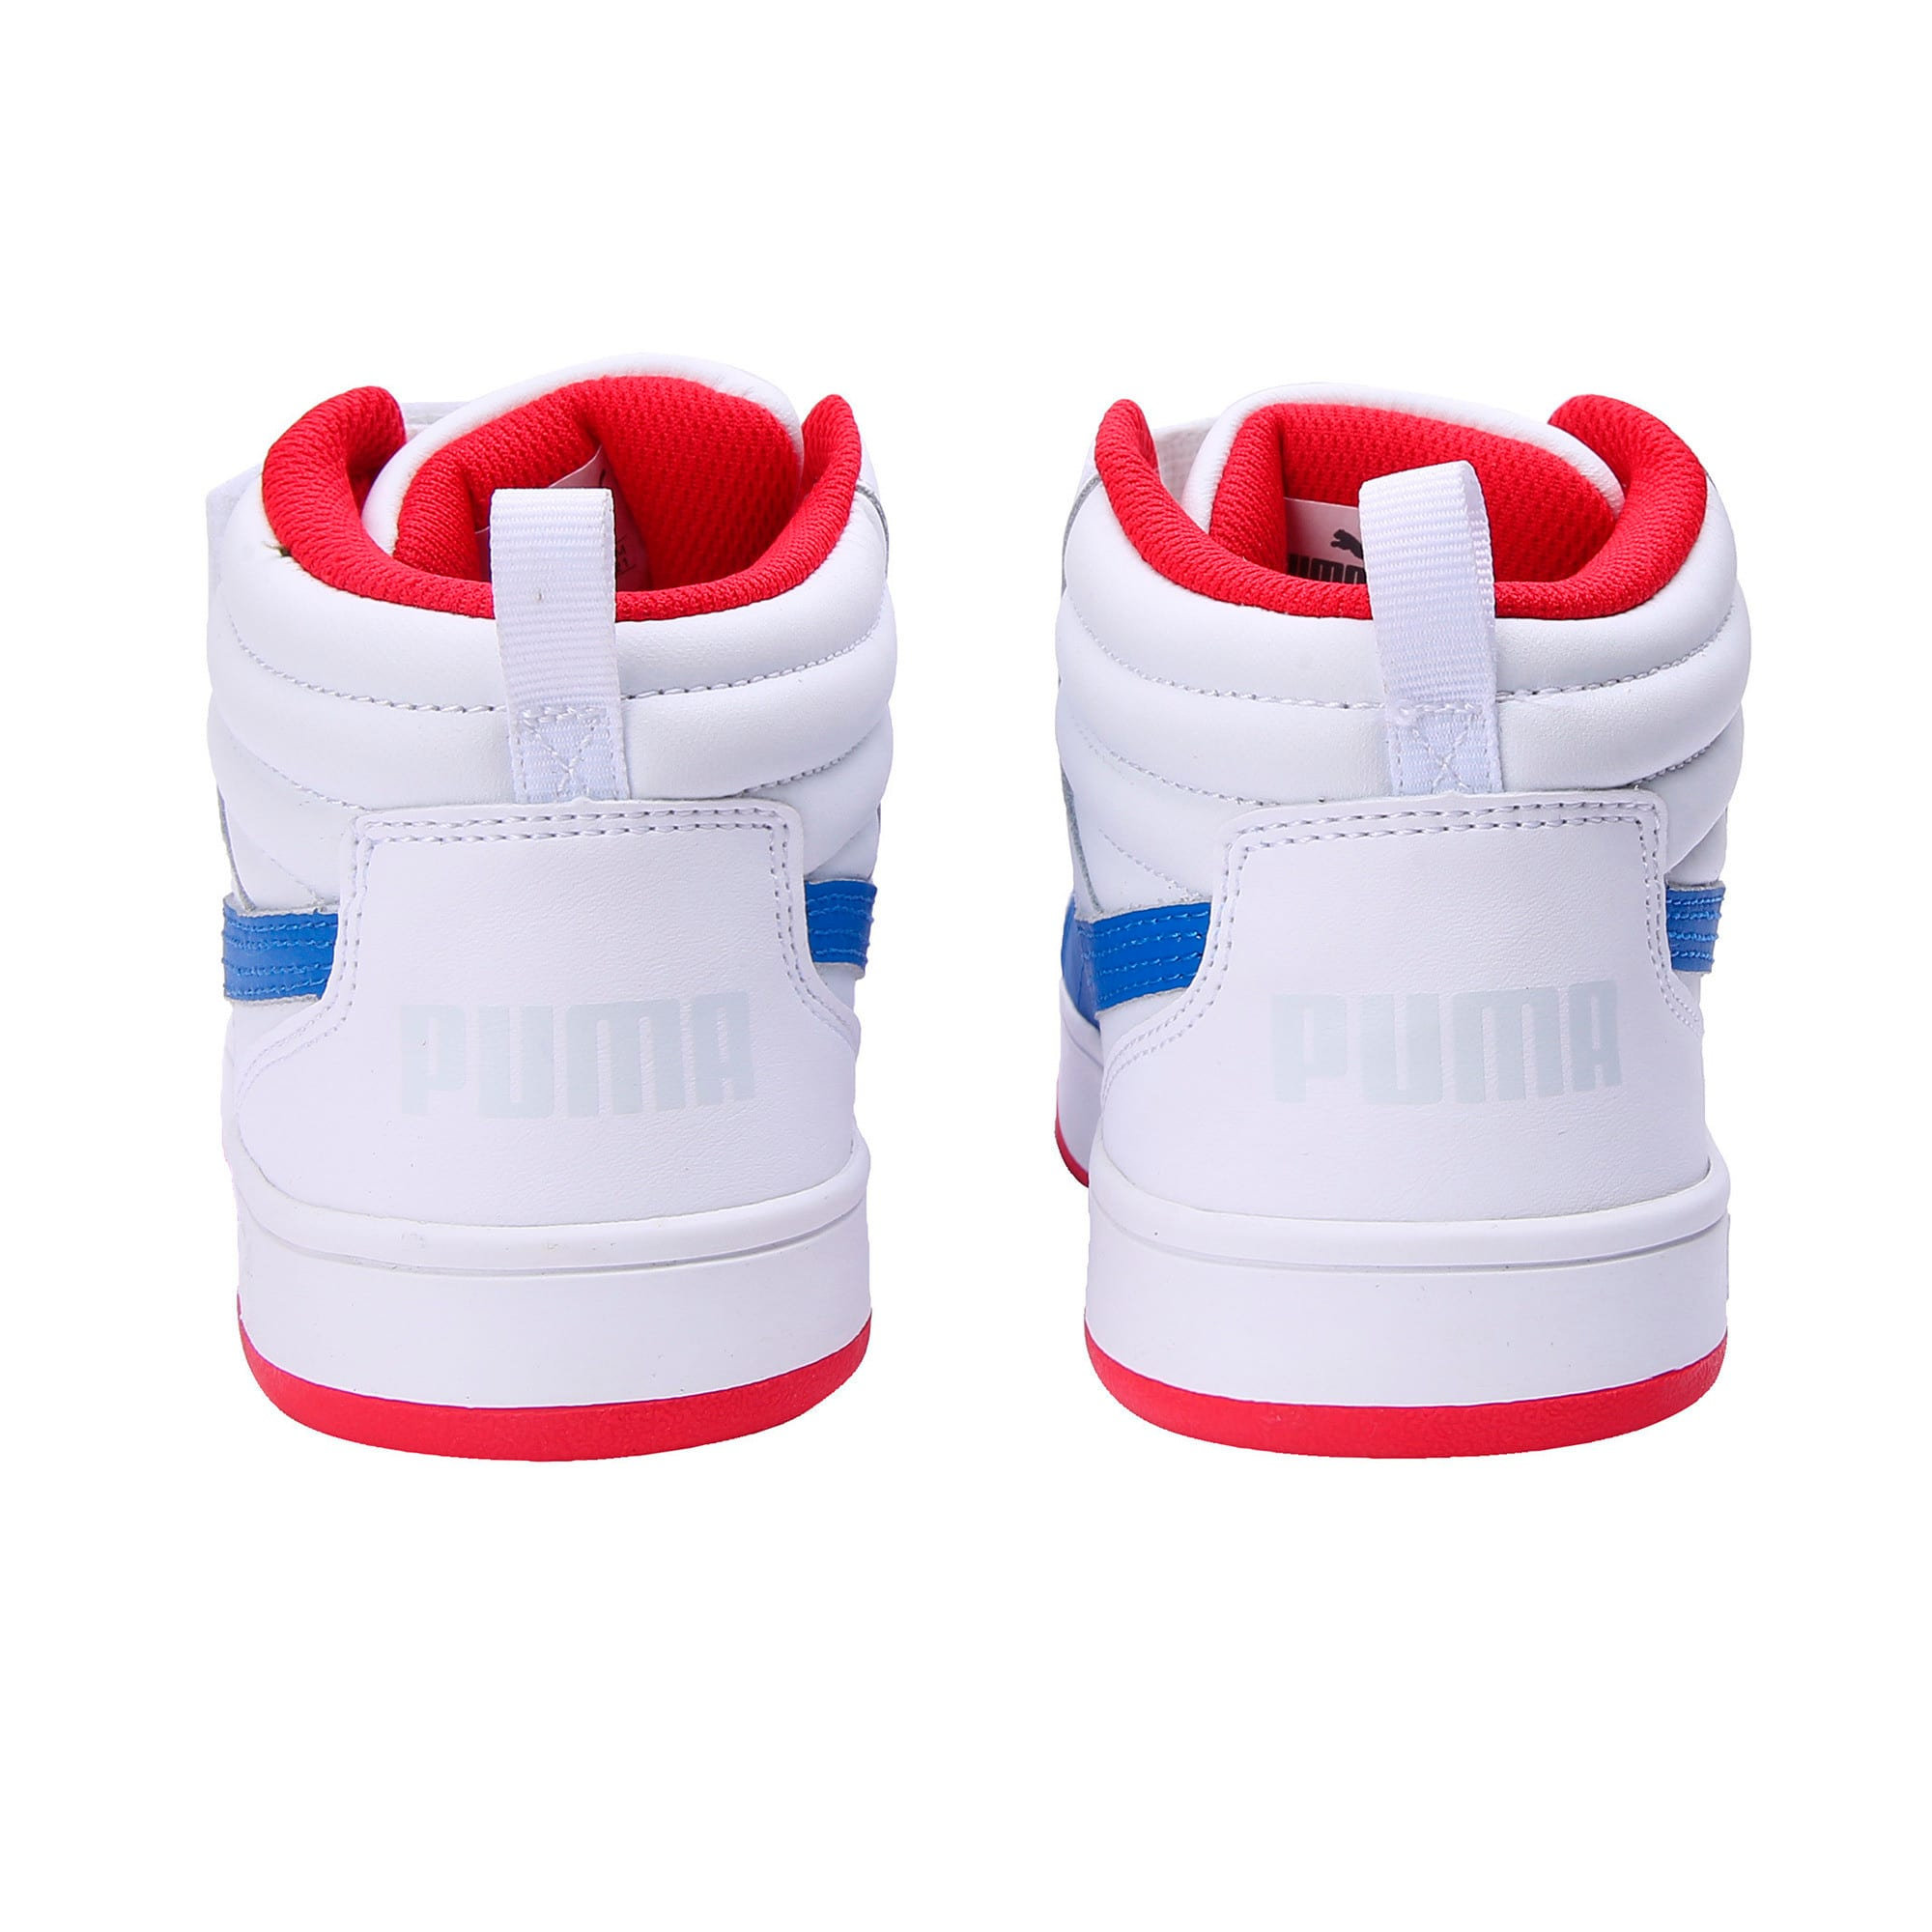 Thumbnail 3 of PumaReboundStreet2 L V PS, White-Strng Blue-Rbbn Red, medium-IND